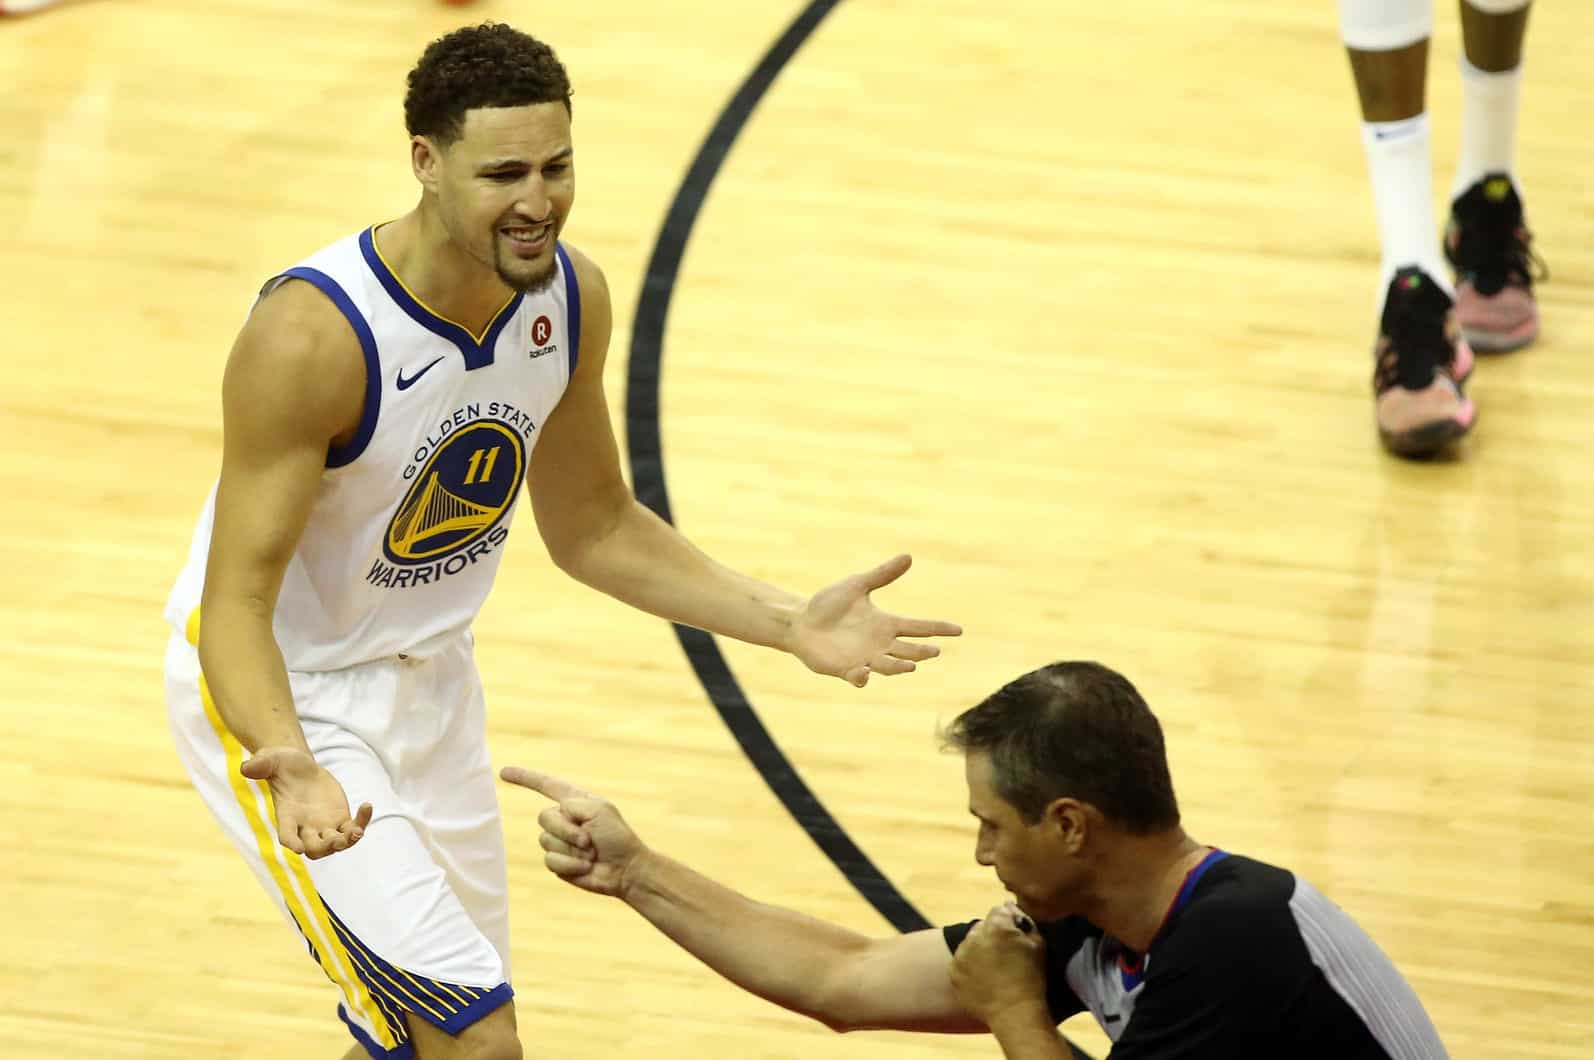 Warriors' Klay Thompson will likely play Game 5 against the Rockets